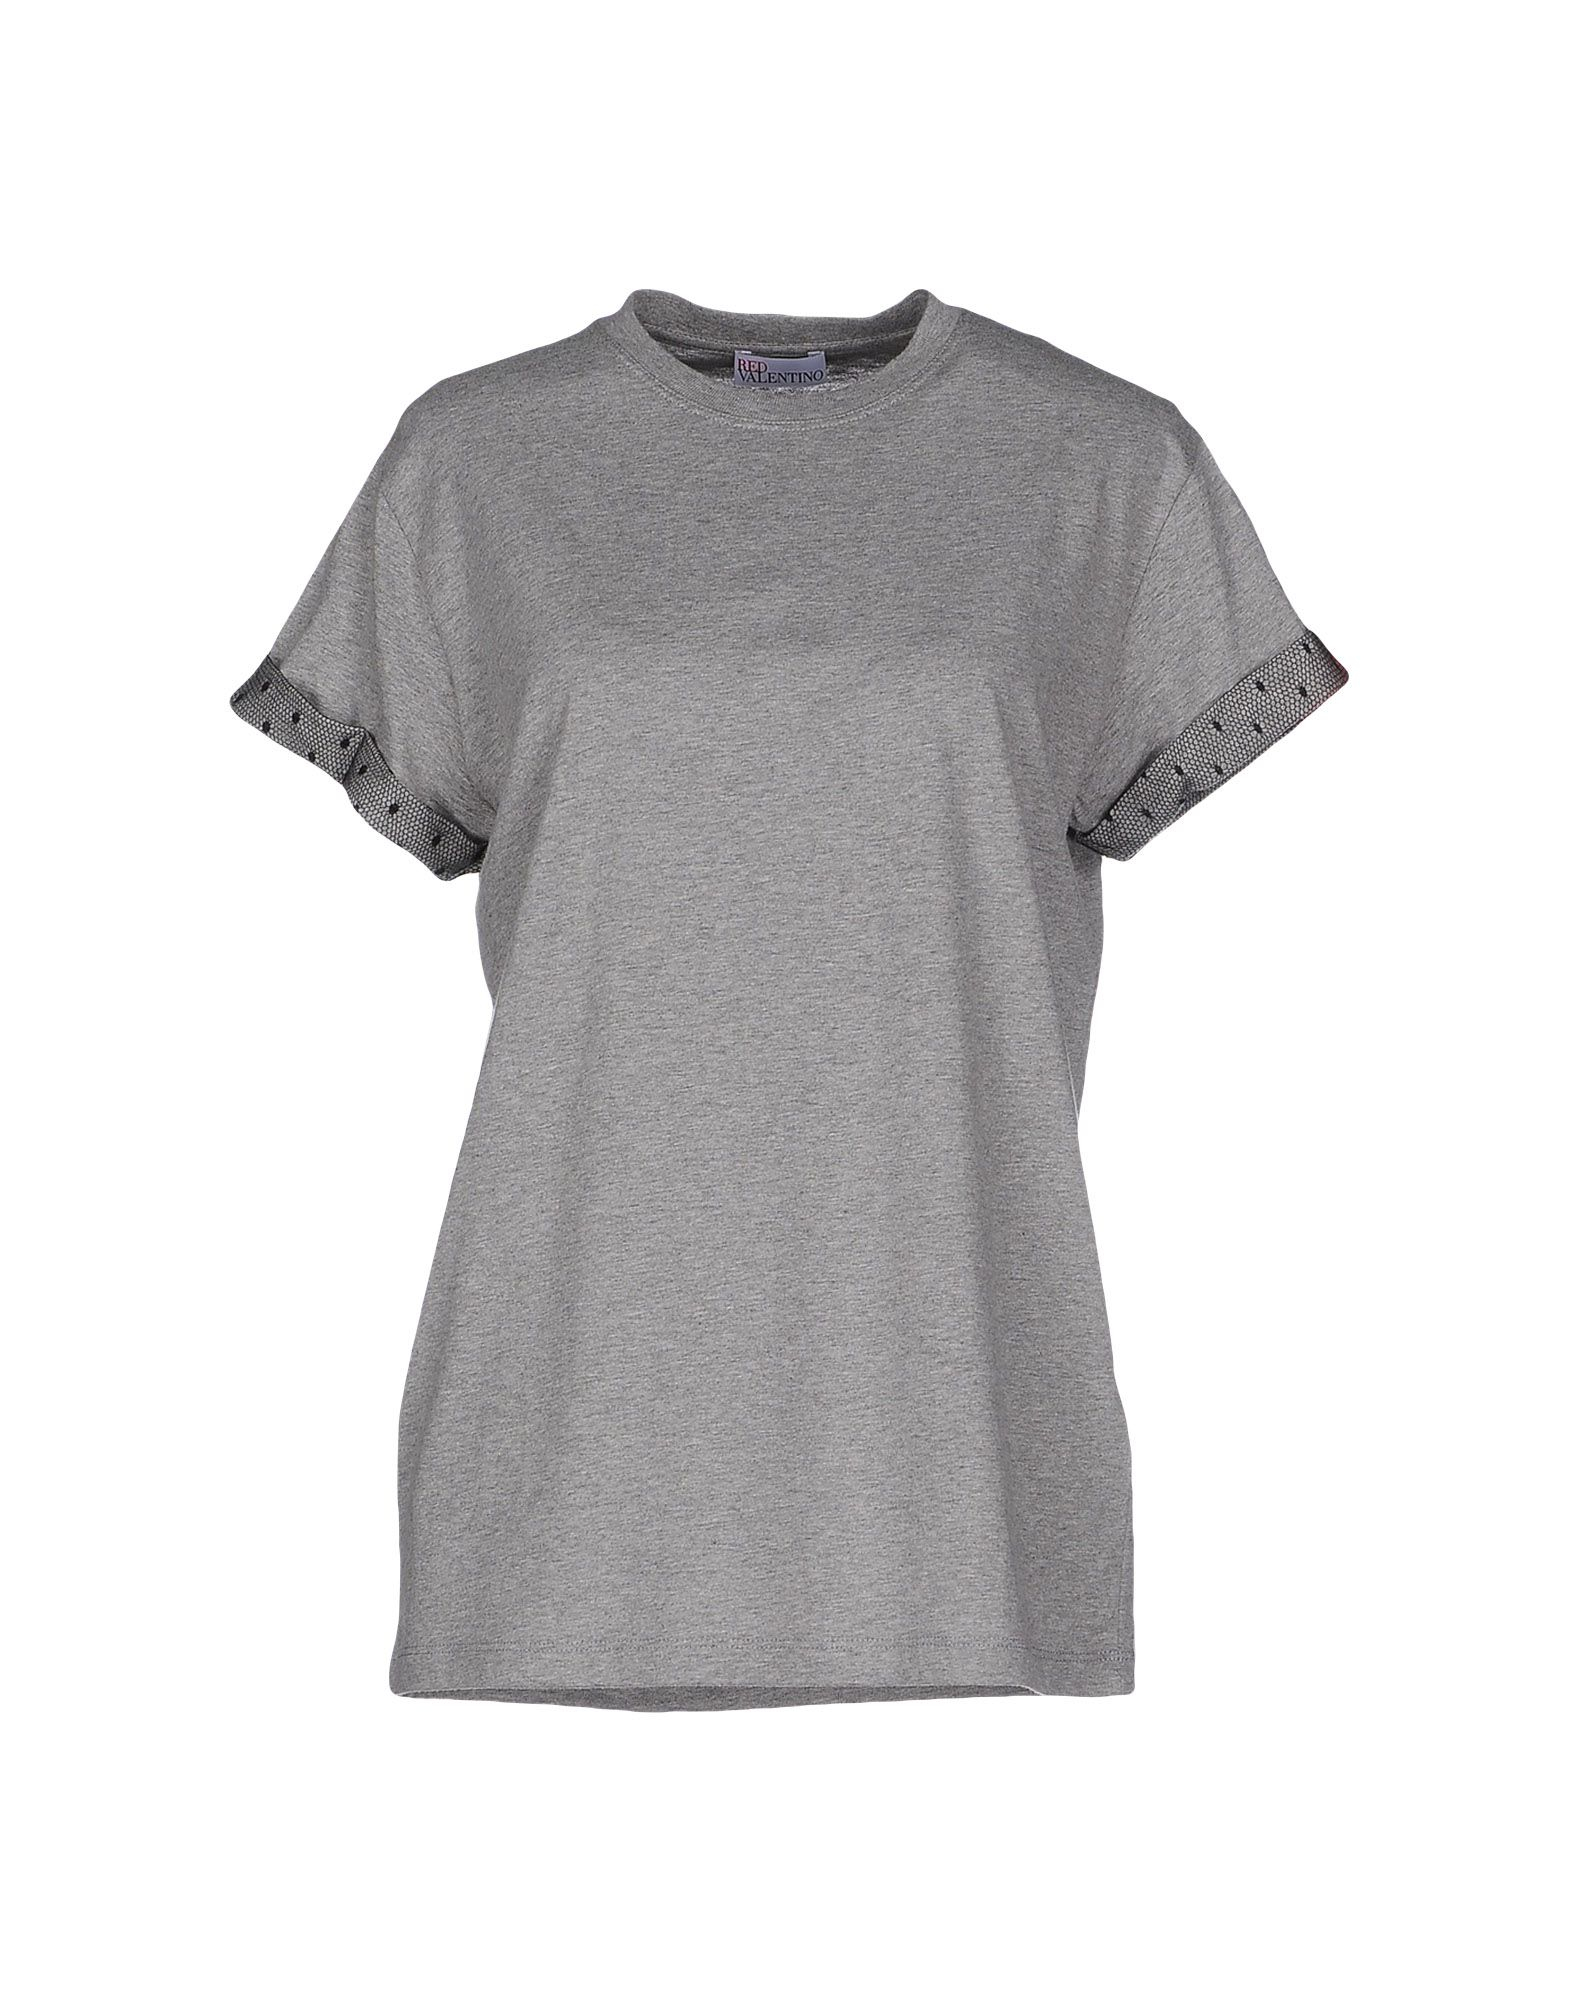 Red valentino t shirt in gray grey lyst for Red valentino t shirt